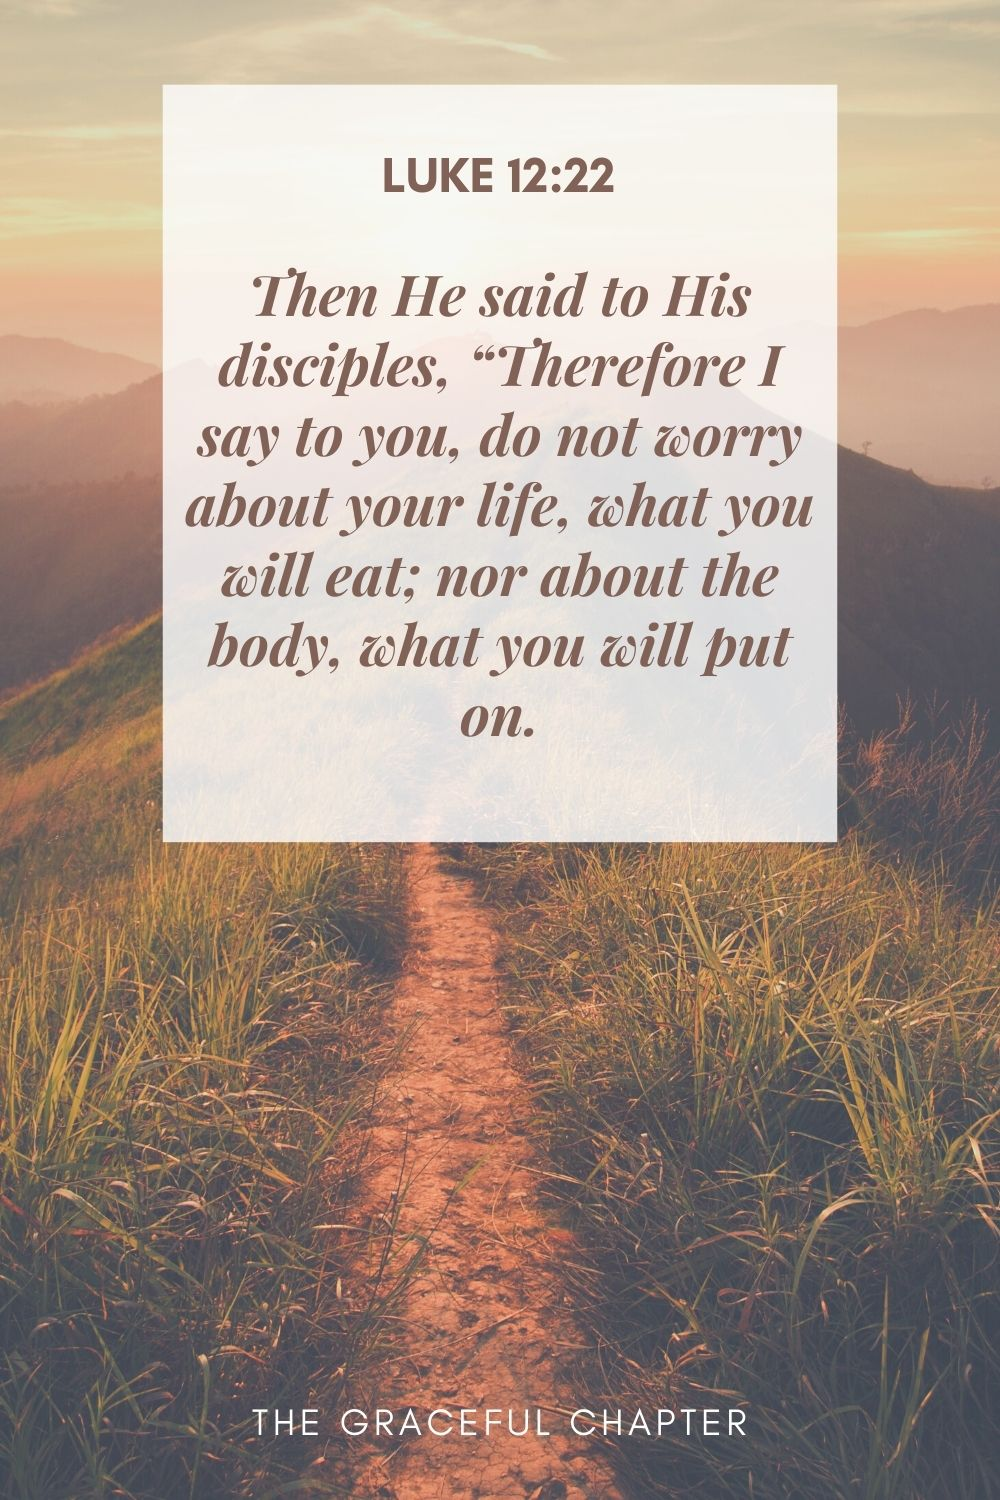 """Then He said to His disciples, """"Therefore I say to you, do not worry about your life, what you will eat; nor about the body, what you will put on. Luke 12:22"""